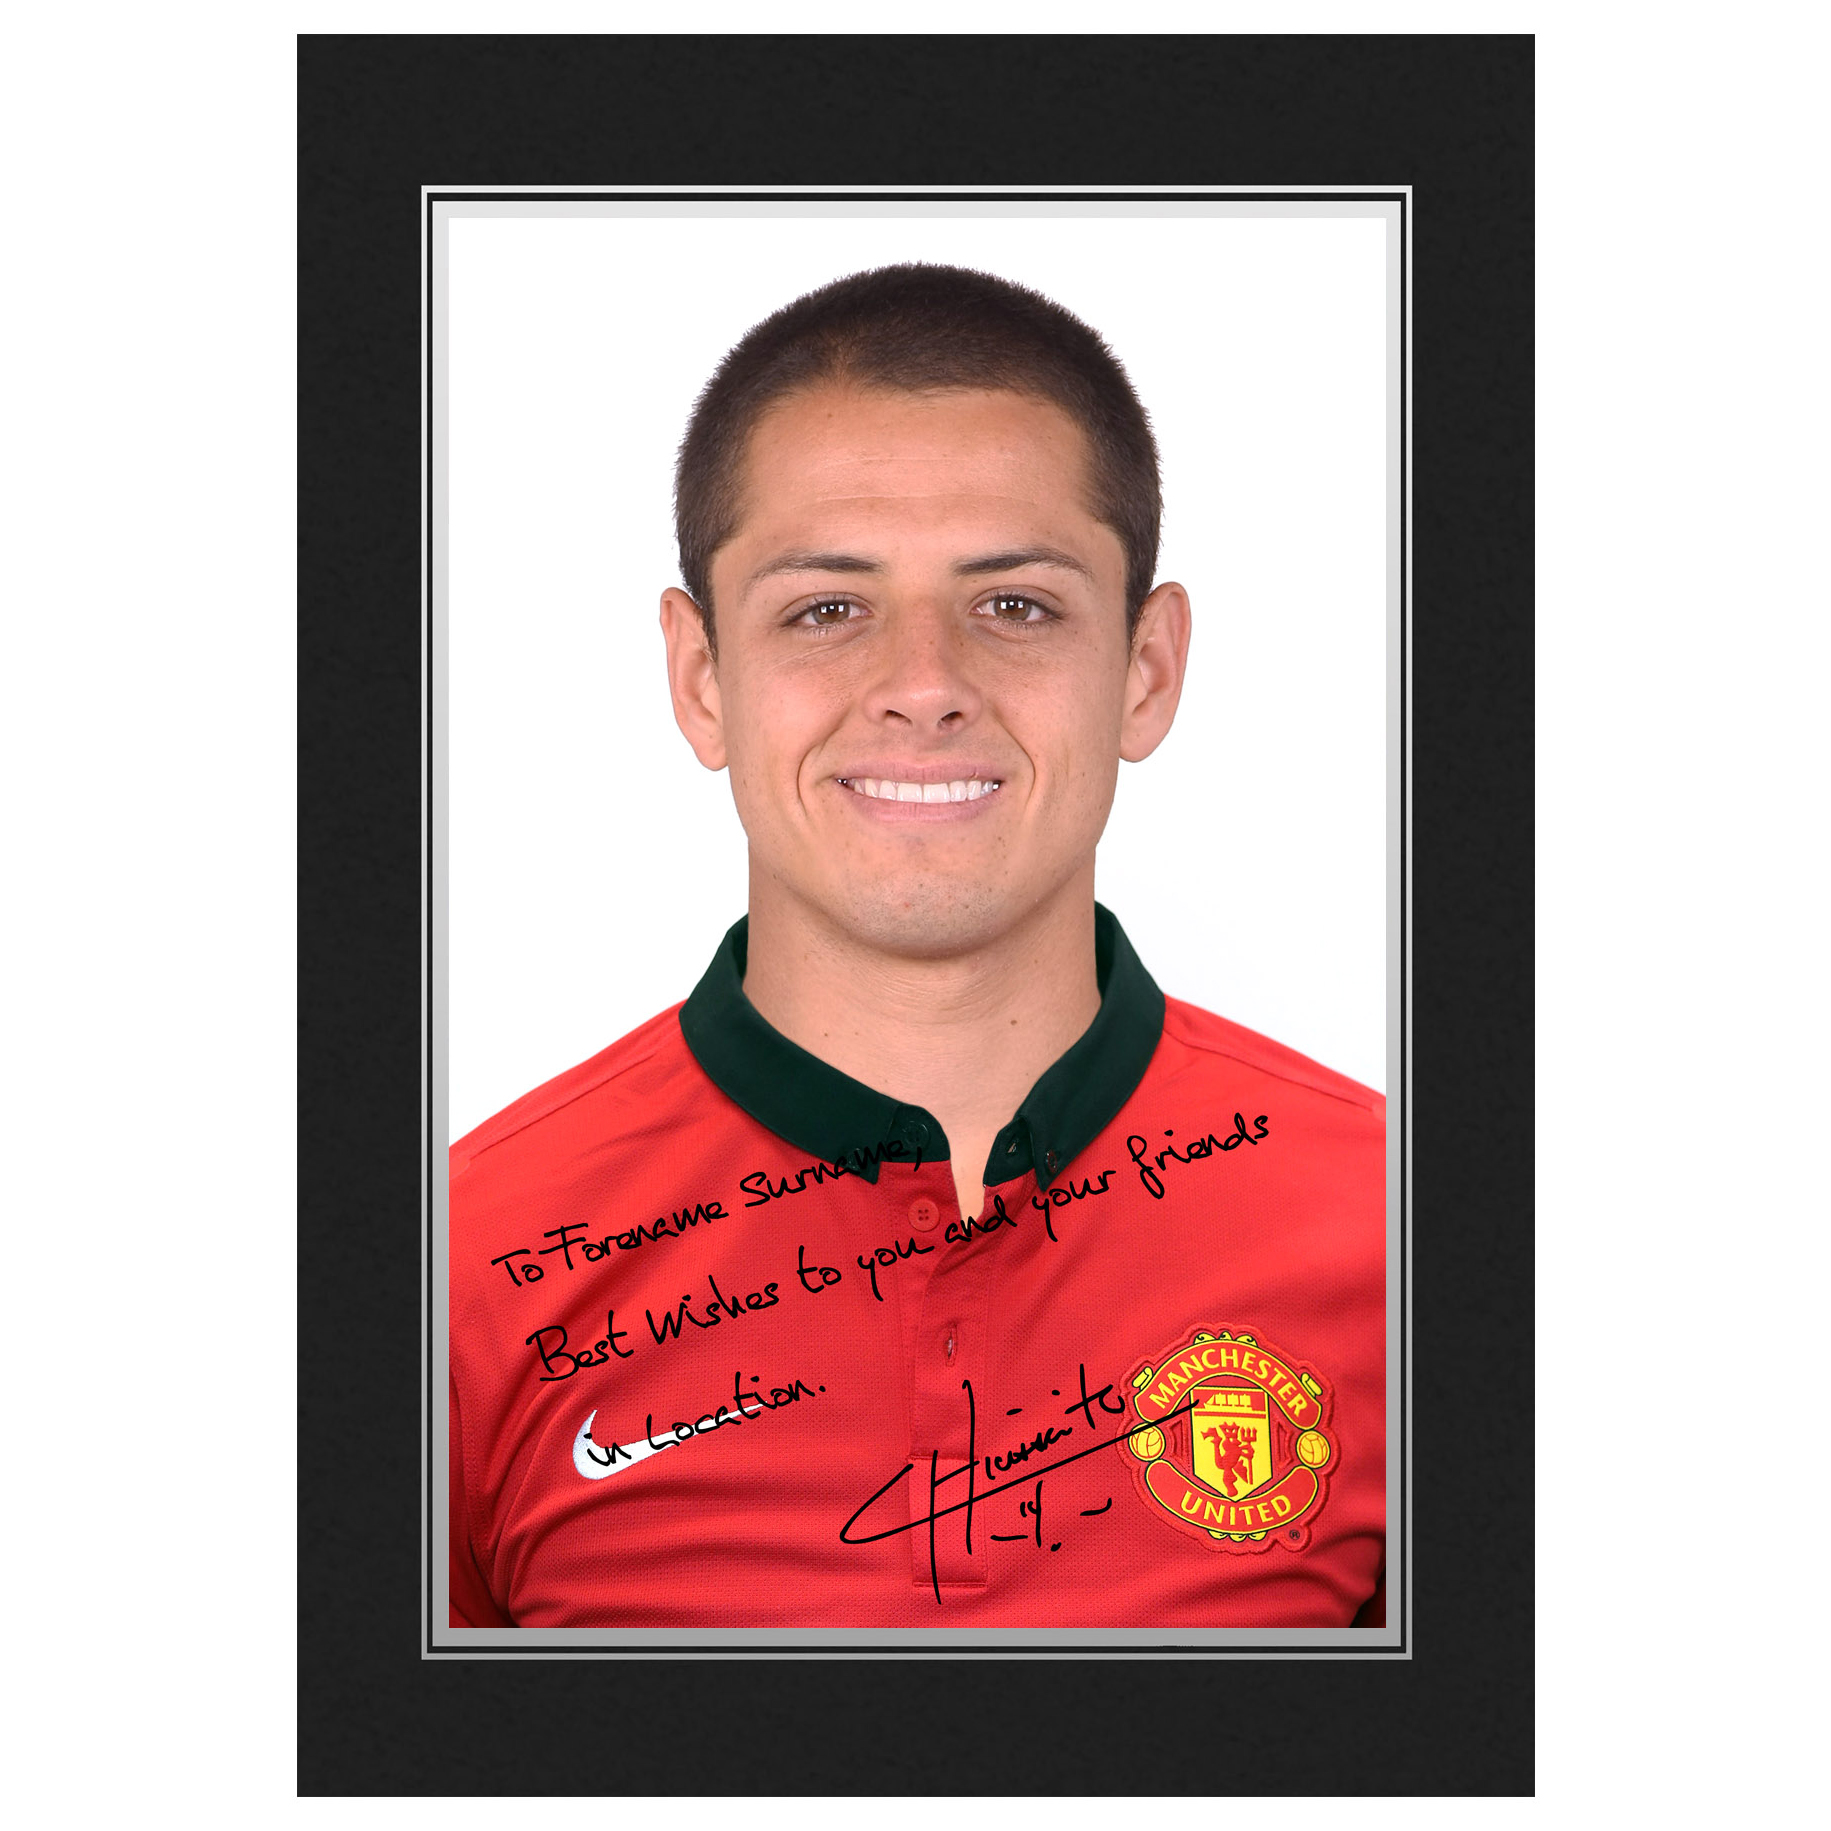 Manchester United Personalised Signature Photo In Presentation Folder - Chicharito